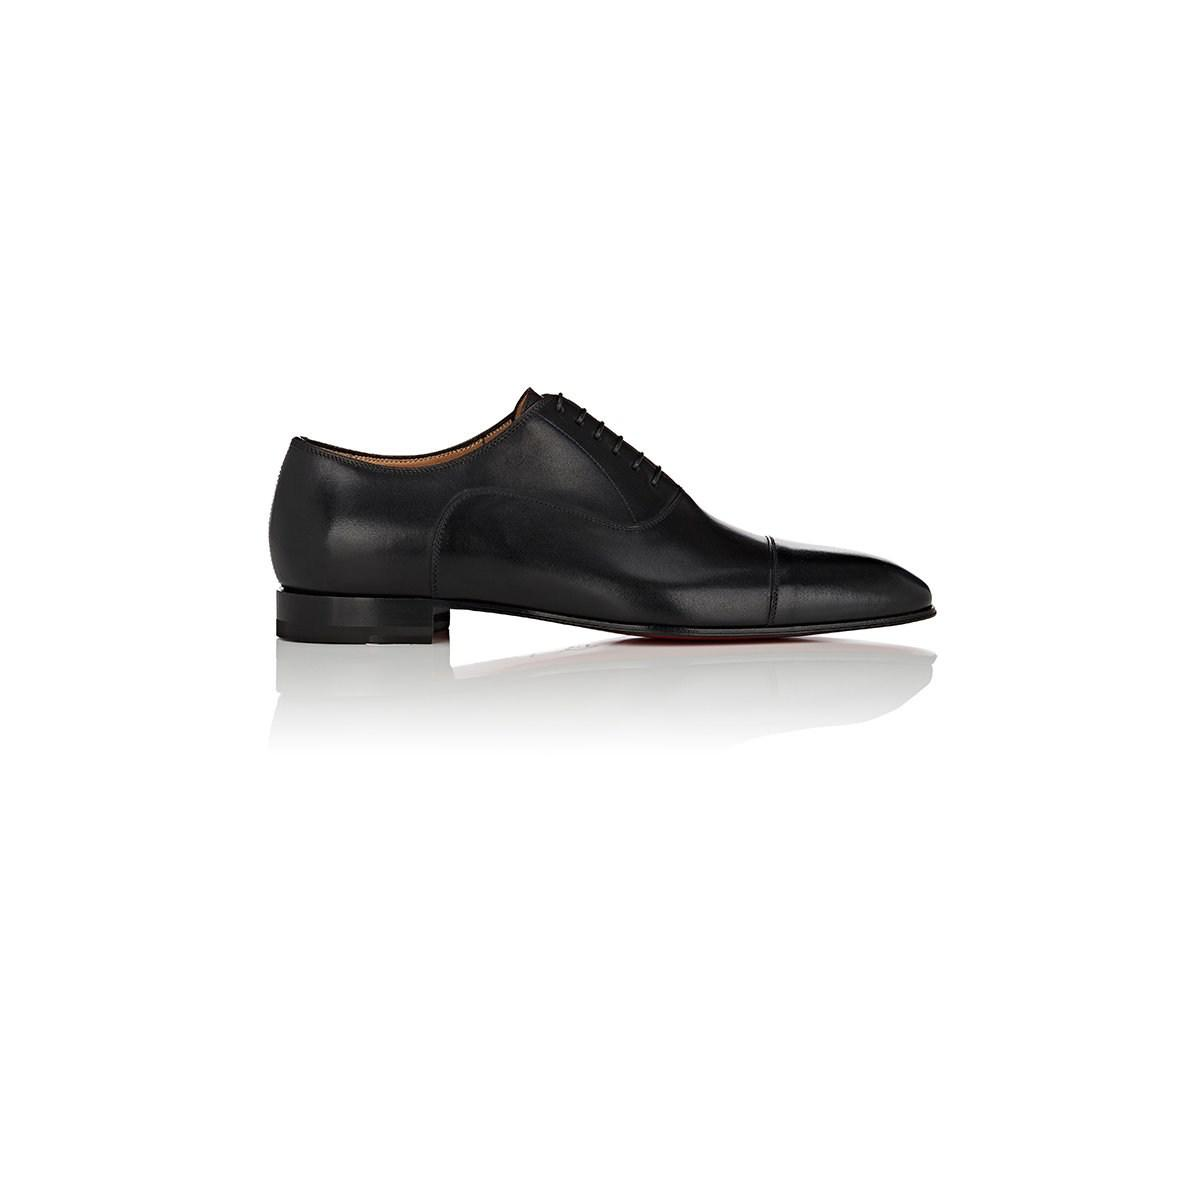 09c2148df22 Lyst - Christian Louboutin Greggo Leather Balmorals in Black for Men